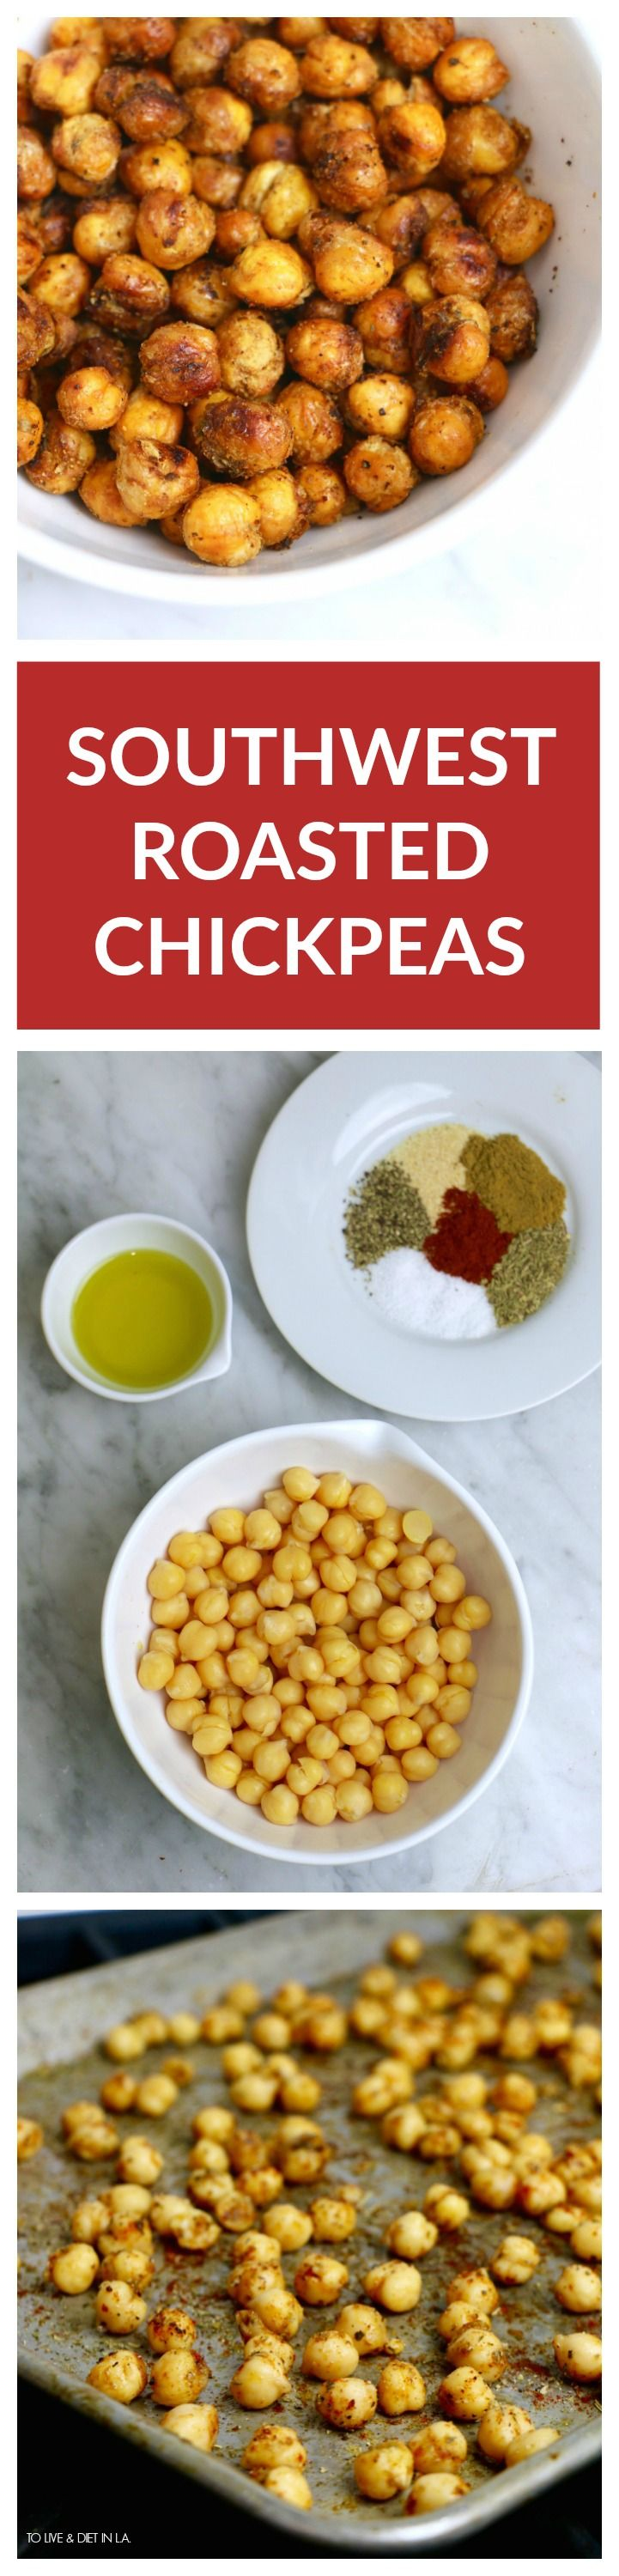 Southwest Roasted Chickpeas - easy, delicious + nutritious! A great post-workout protein snack. @swbeans #beanfit #fitfluential #ad